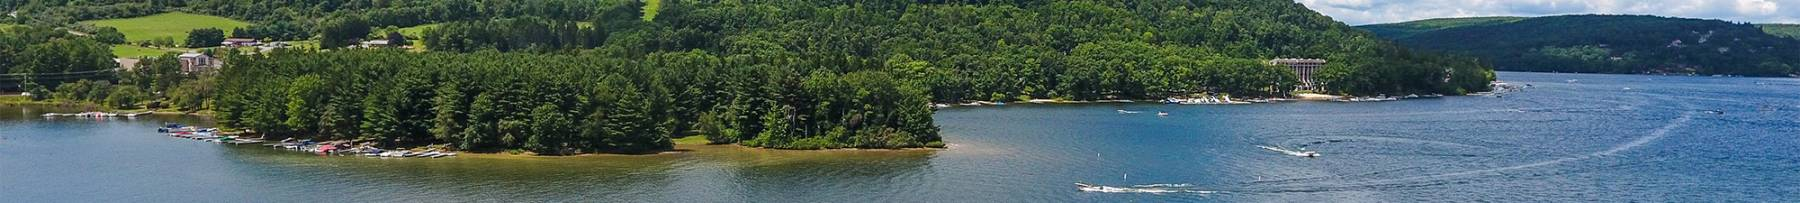 Drone Scenic Summer View of Deep Creek Lake